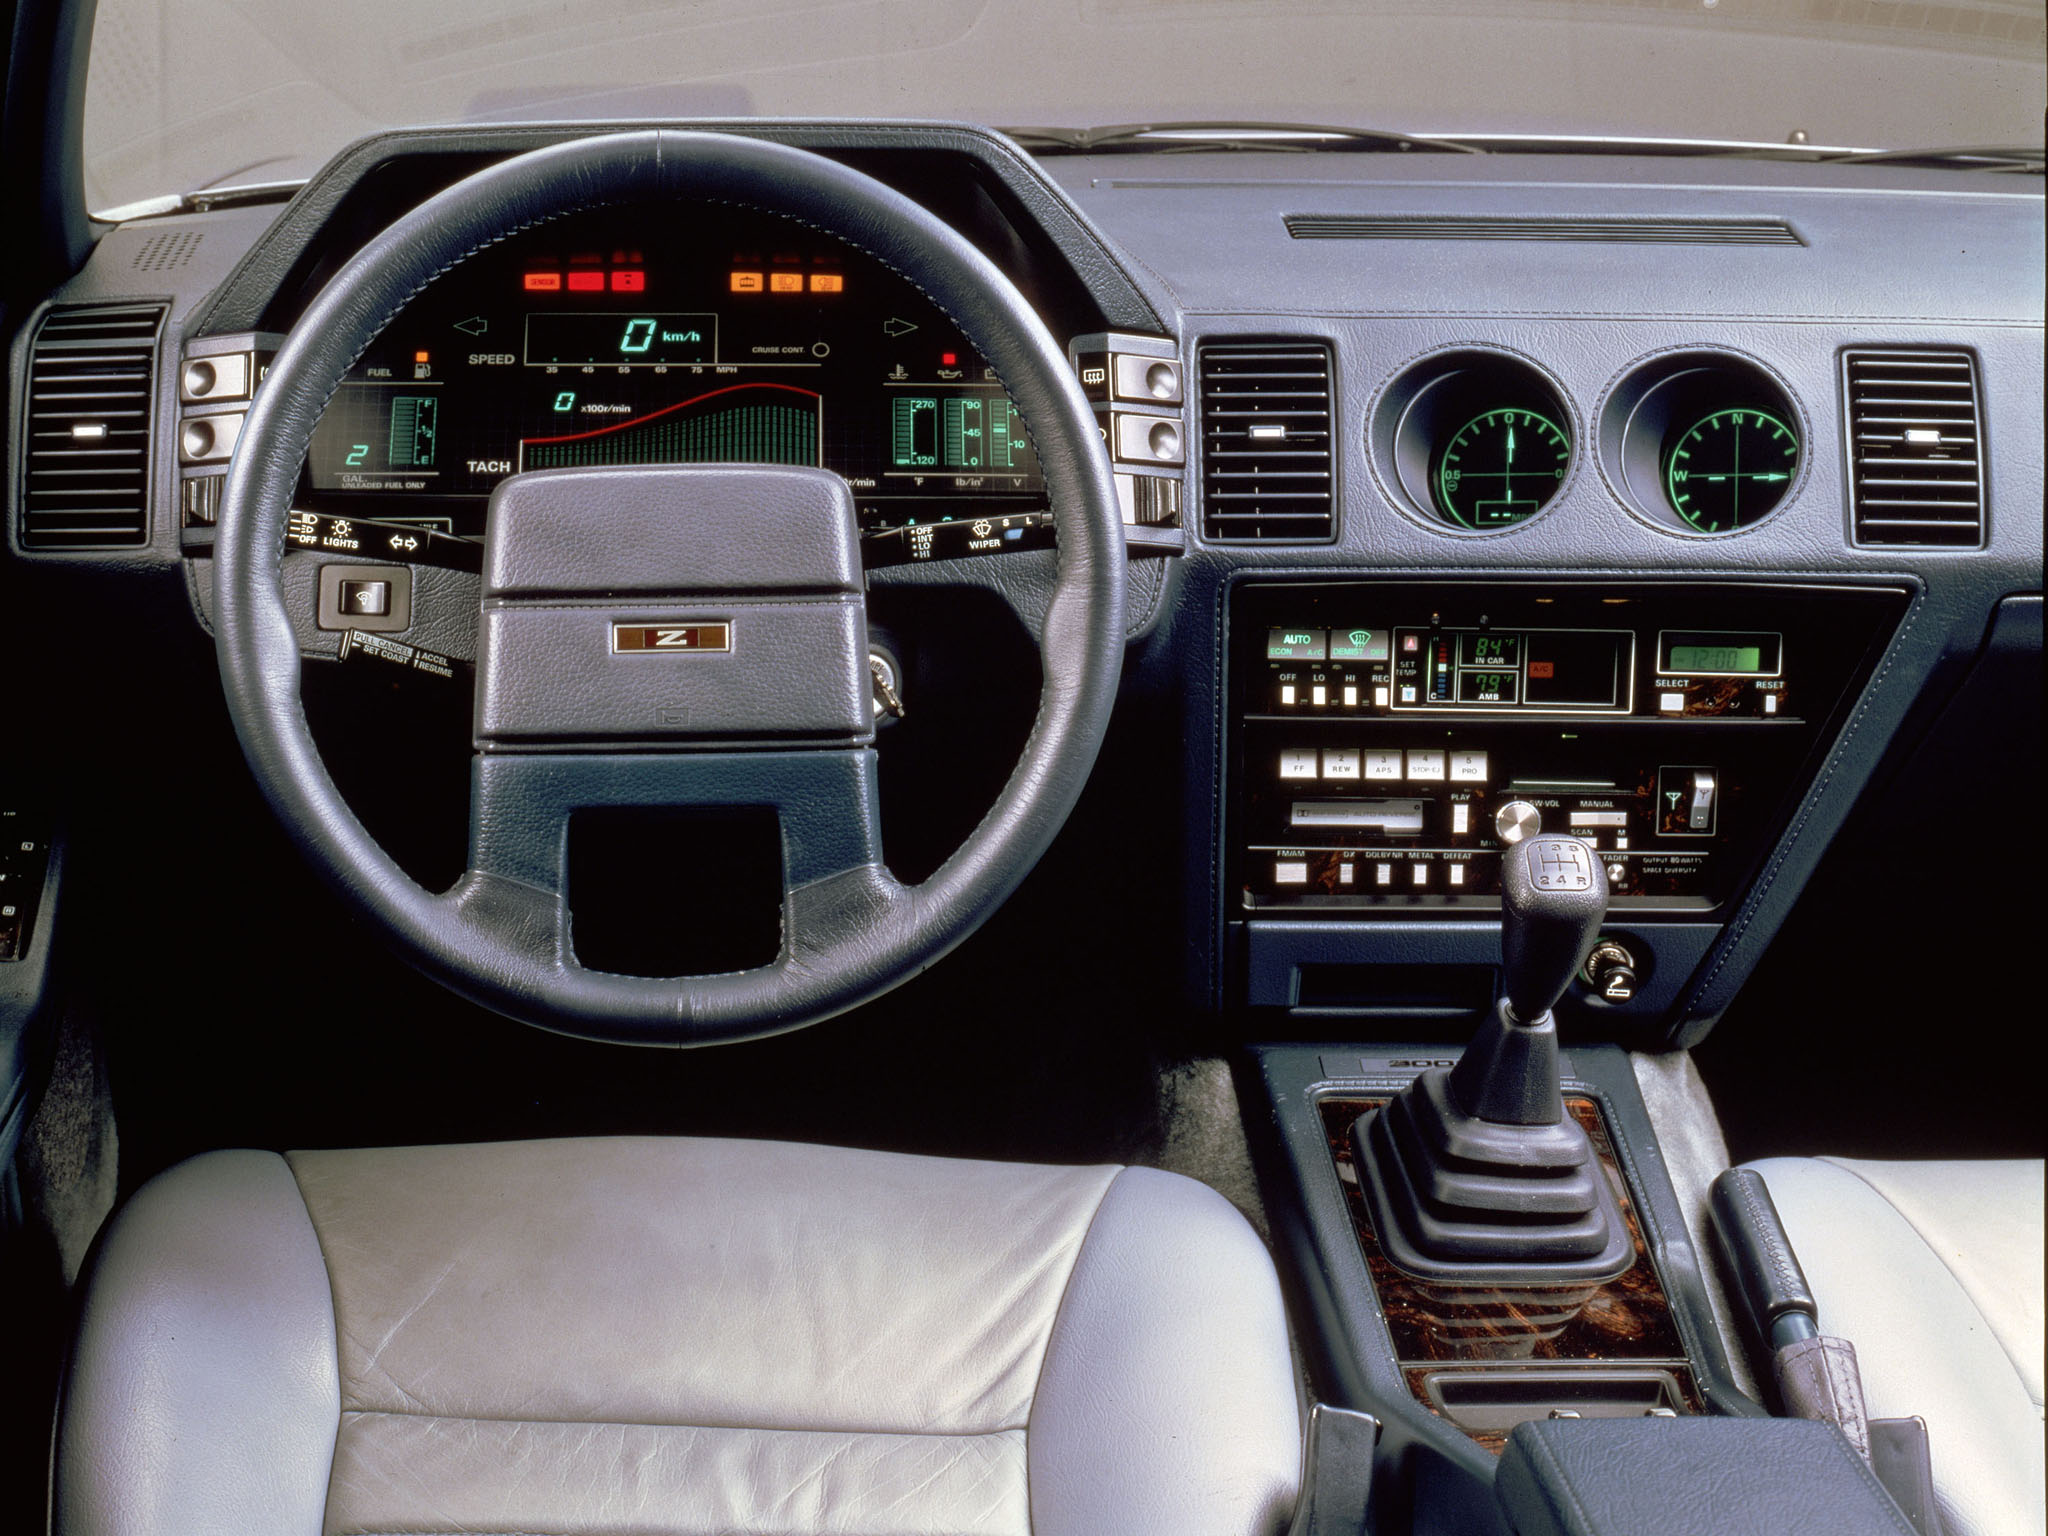 Nissan Zx on Nissan 300zx 3 0 1986 Specs And Images